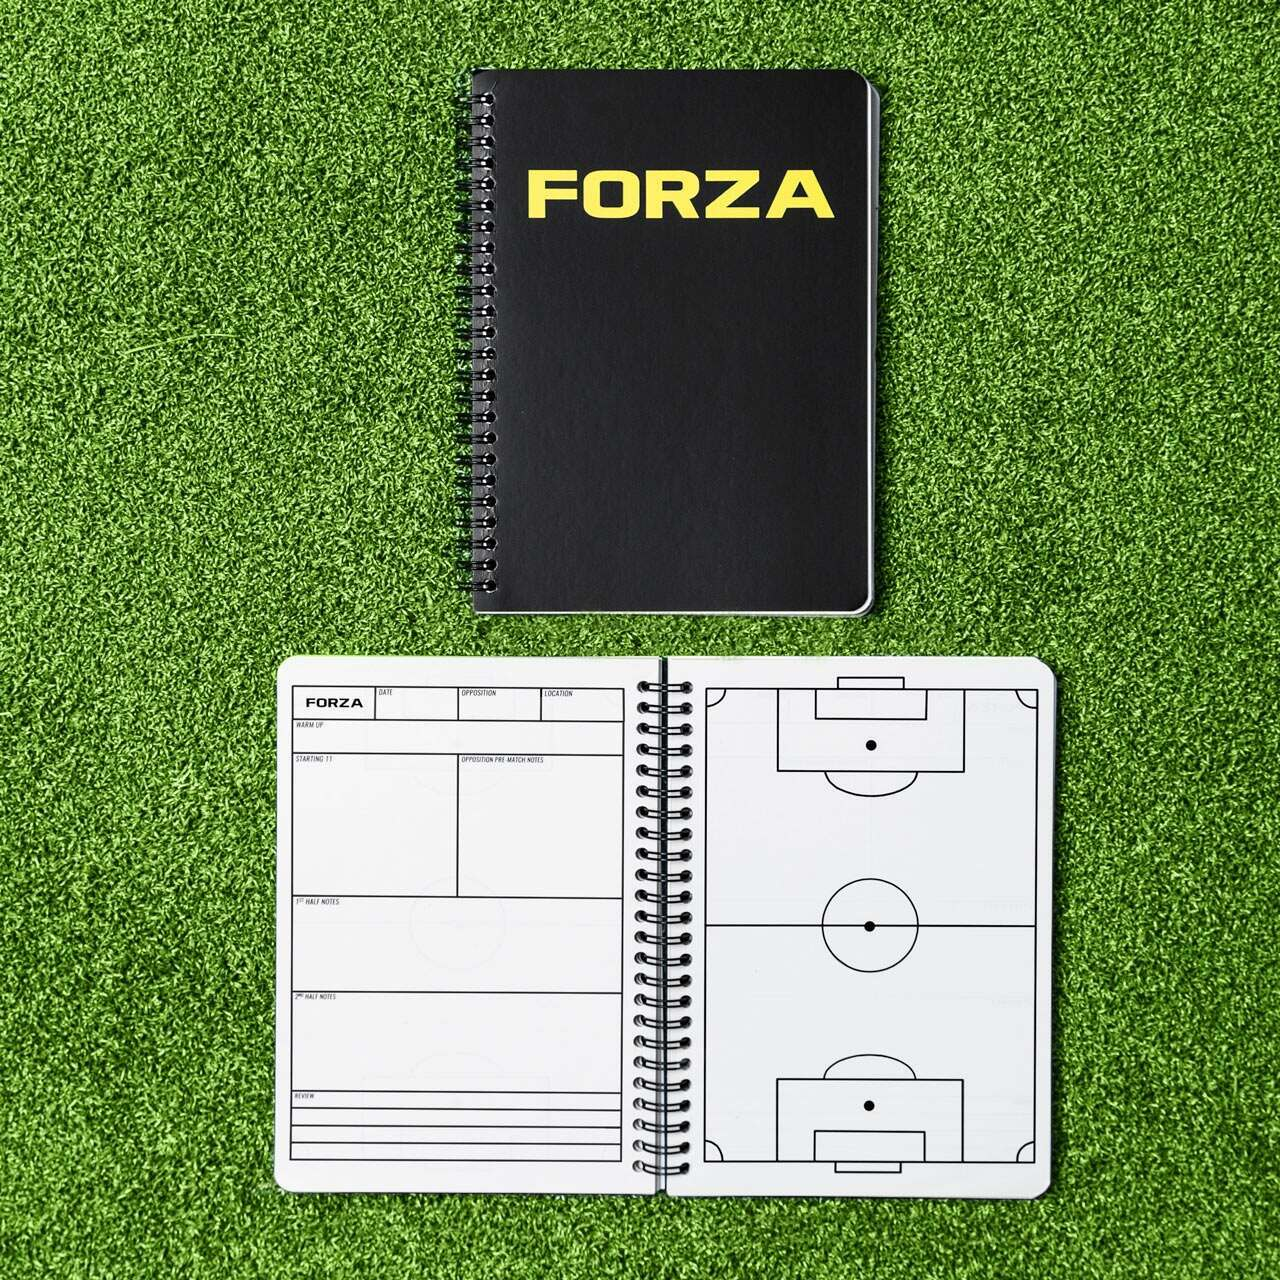 FORZA Football Coaches Notebook [A4/A5]